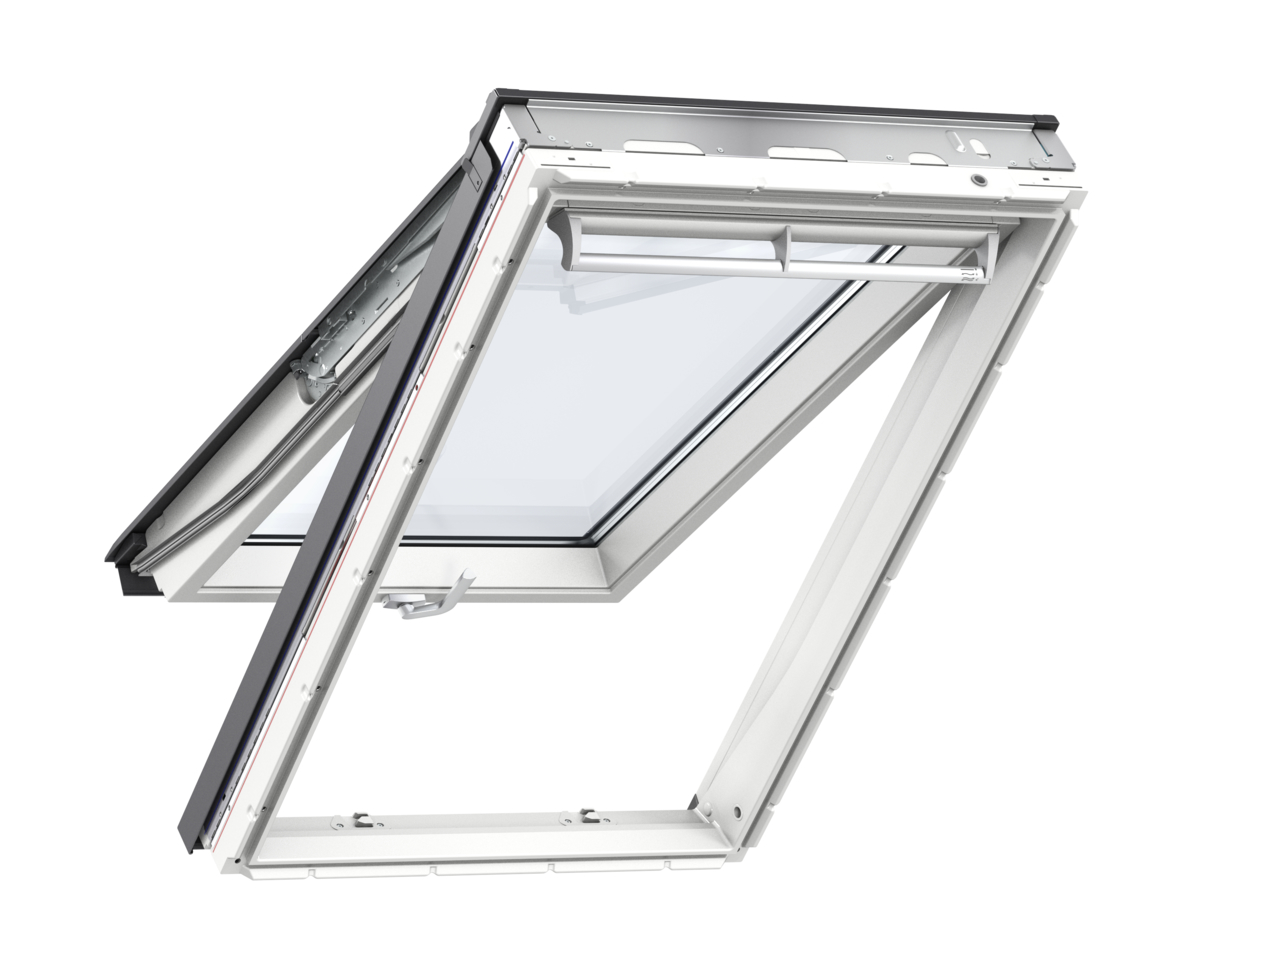 Velux GPU MK04 780 x 980mm Top Hung 62Pane Roof Window - White Polyurethane